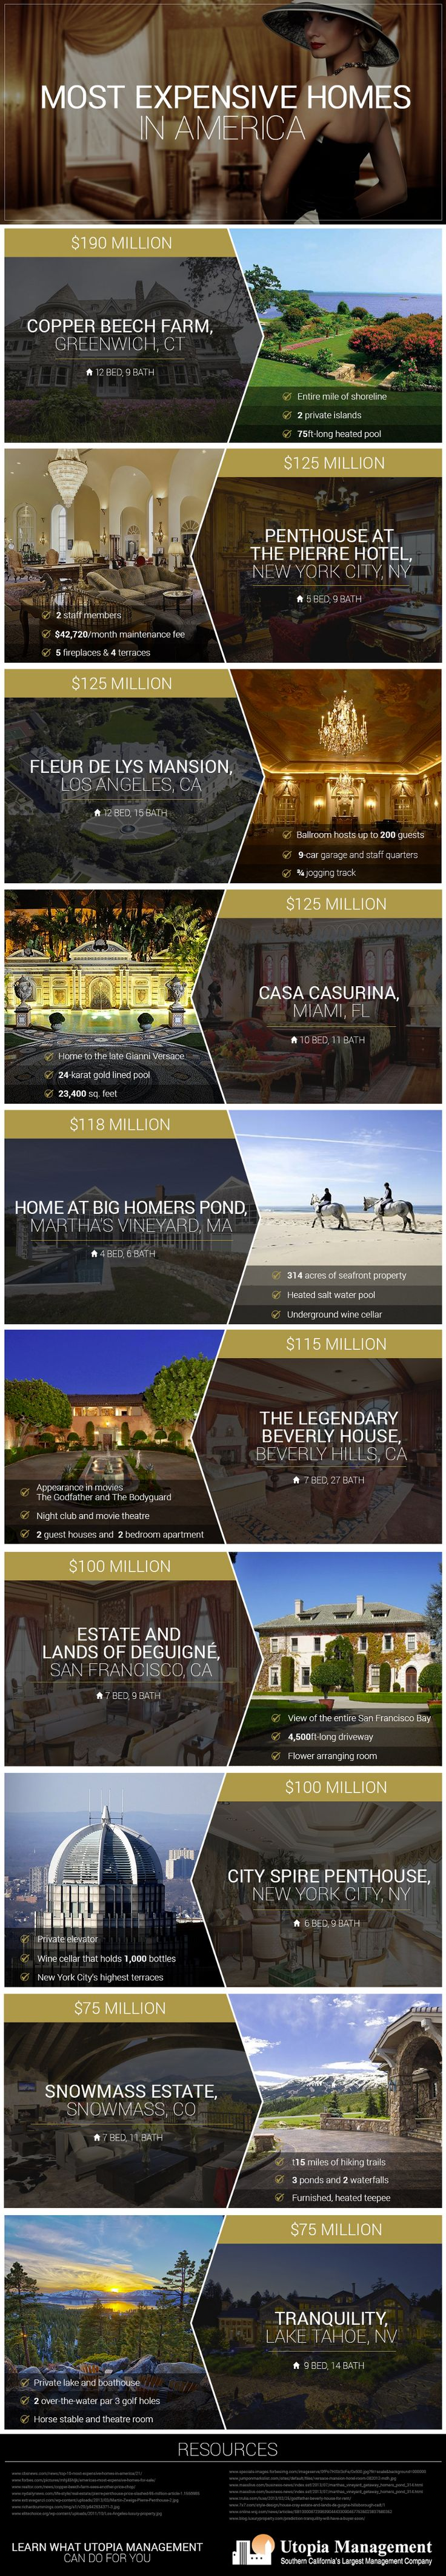 81 best most expensive houses images on pinterest | most expensive